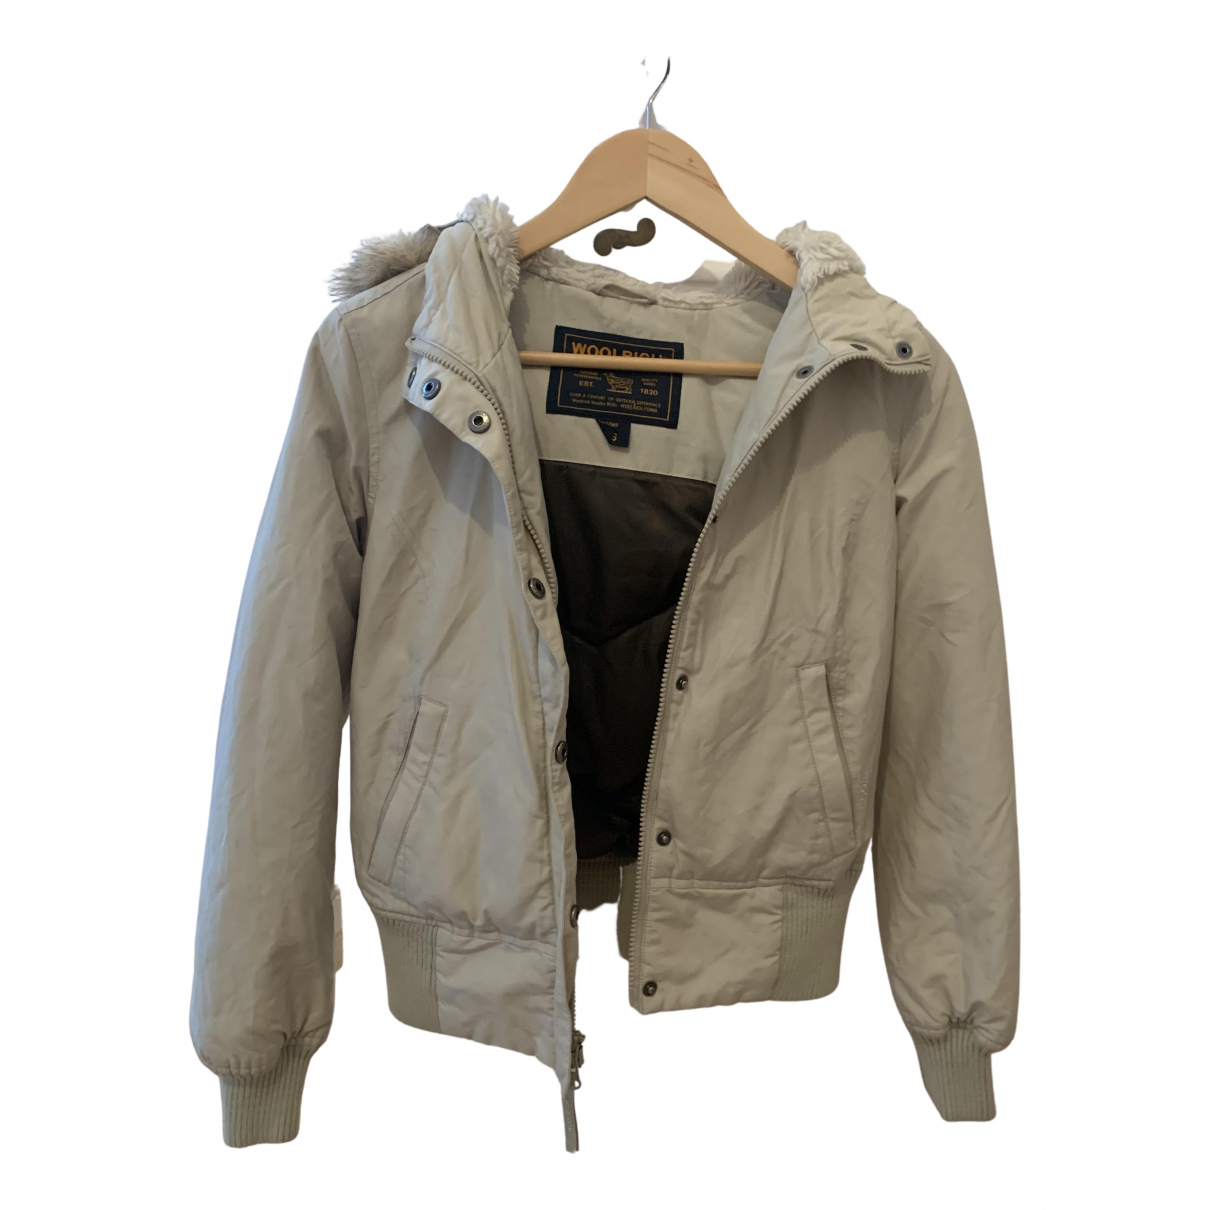 Woolrich N Beige Cotton jacket for Women XS International